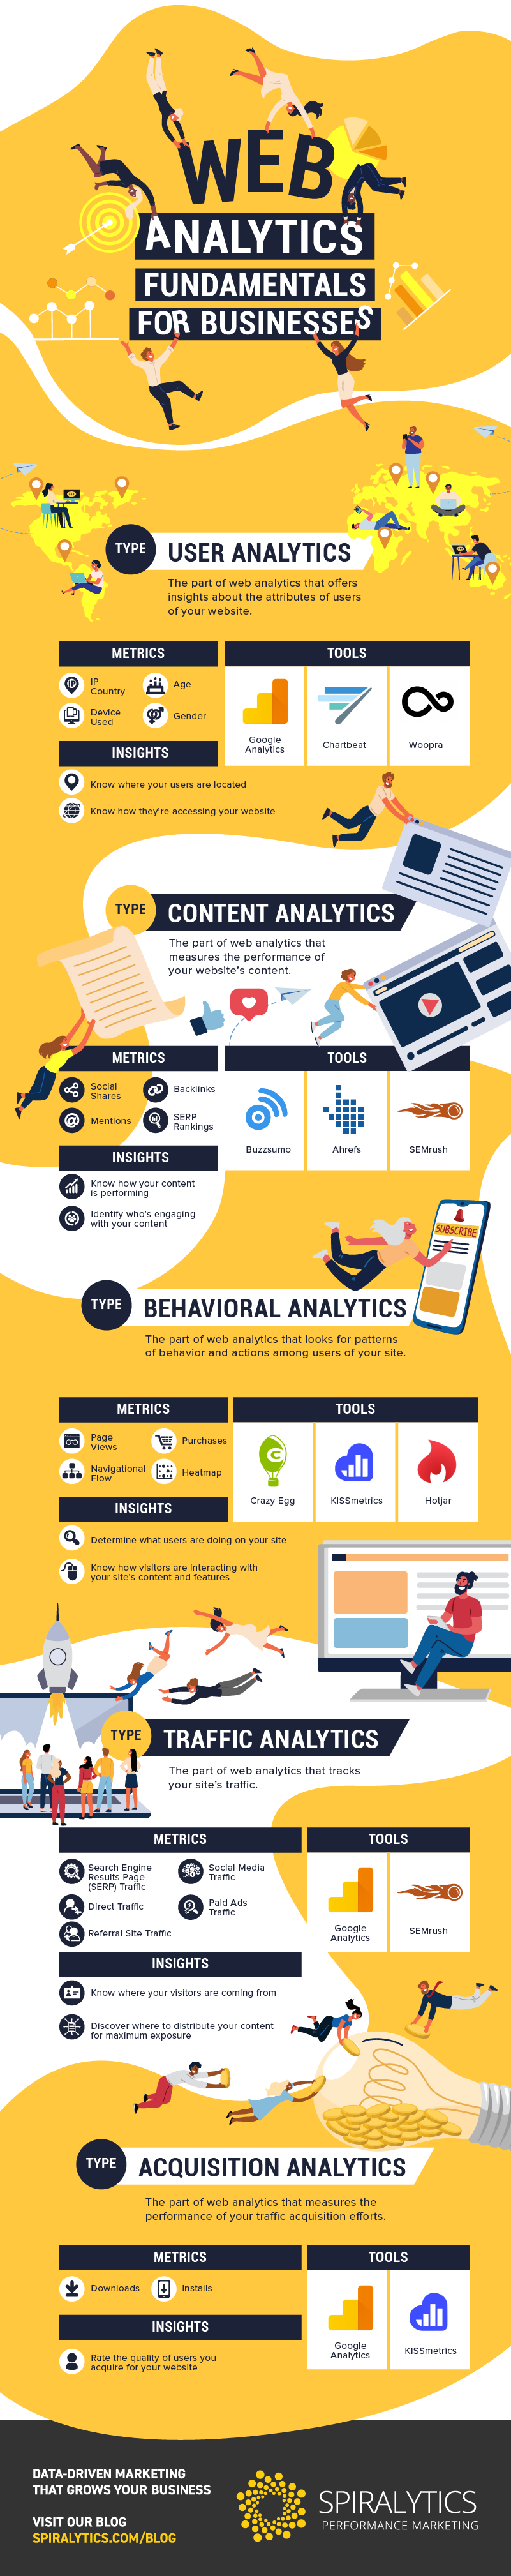 Web Analytics Fundamentals for Businesses_Infographic